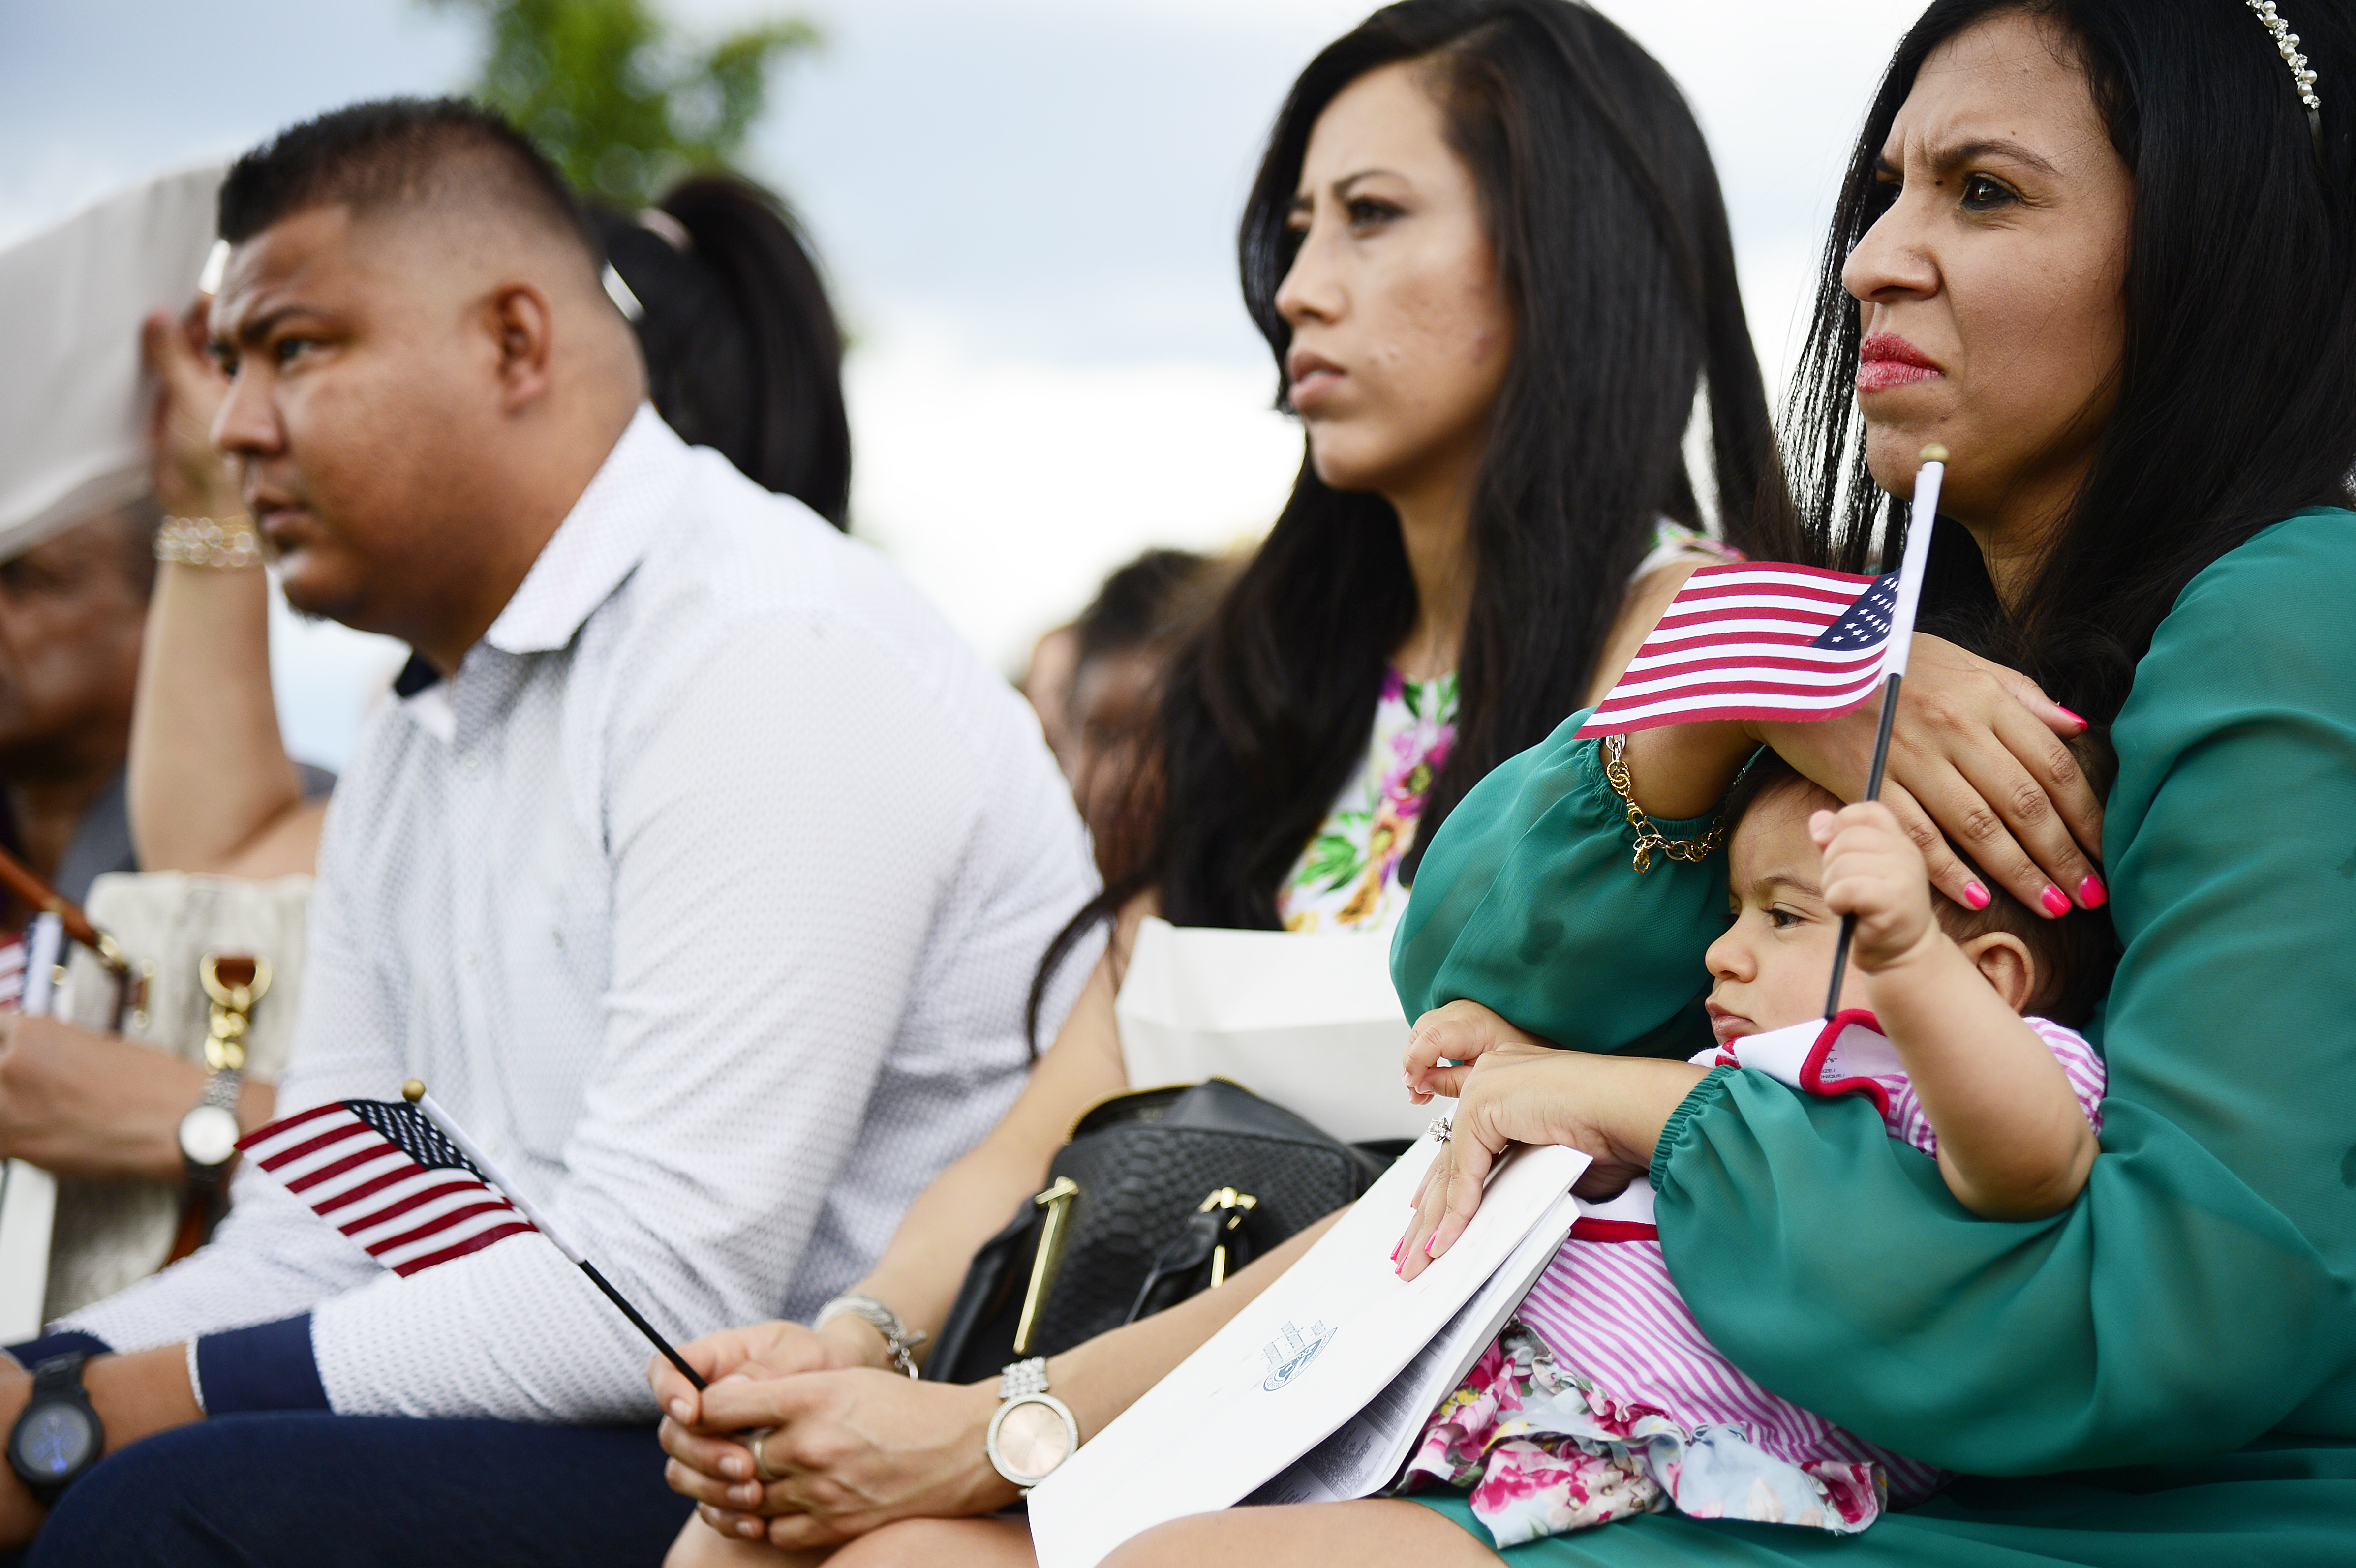 29 Take The Oath To Become U.S. Citizens